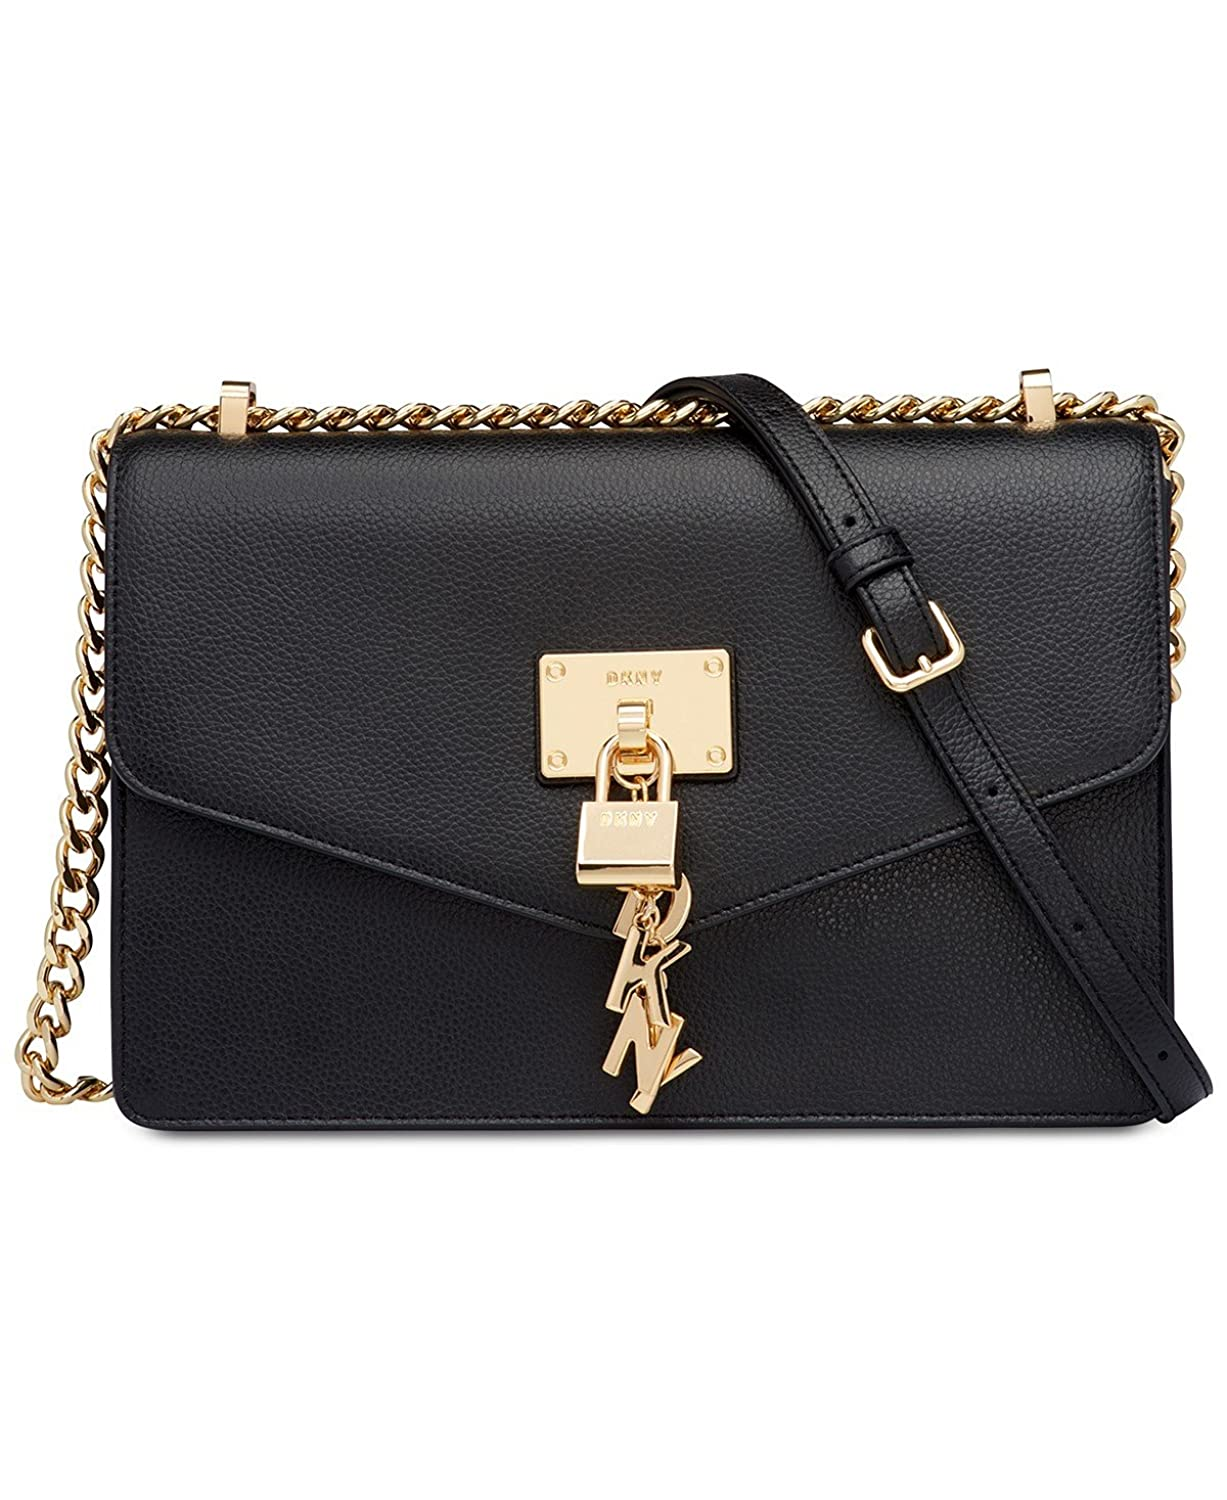 Dkny Elissa Medium Chain Strap Shoulder Bag by Dkny